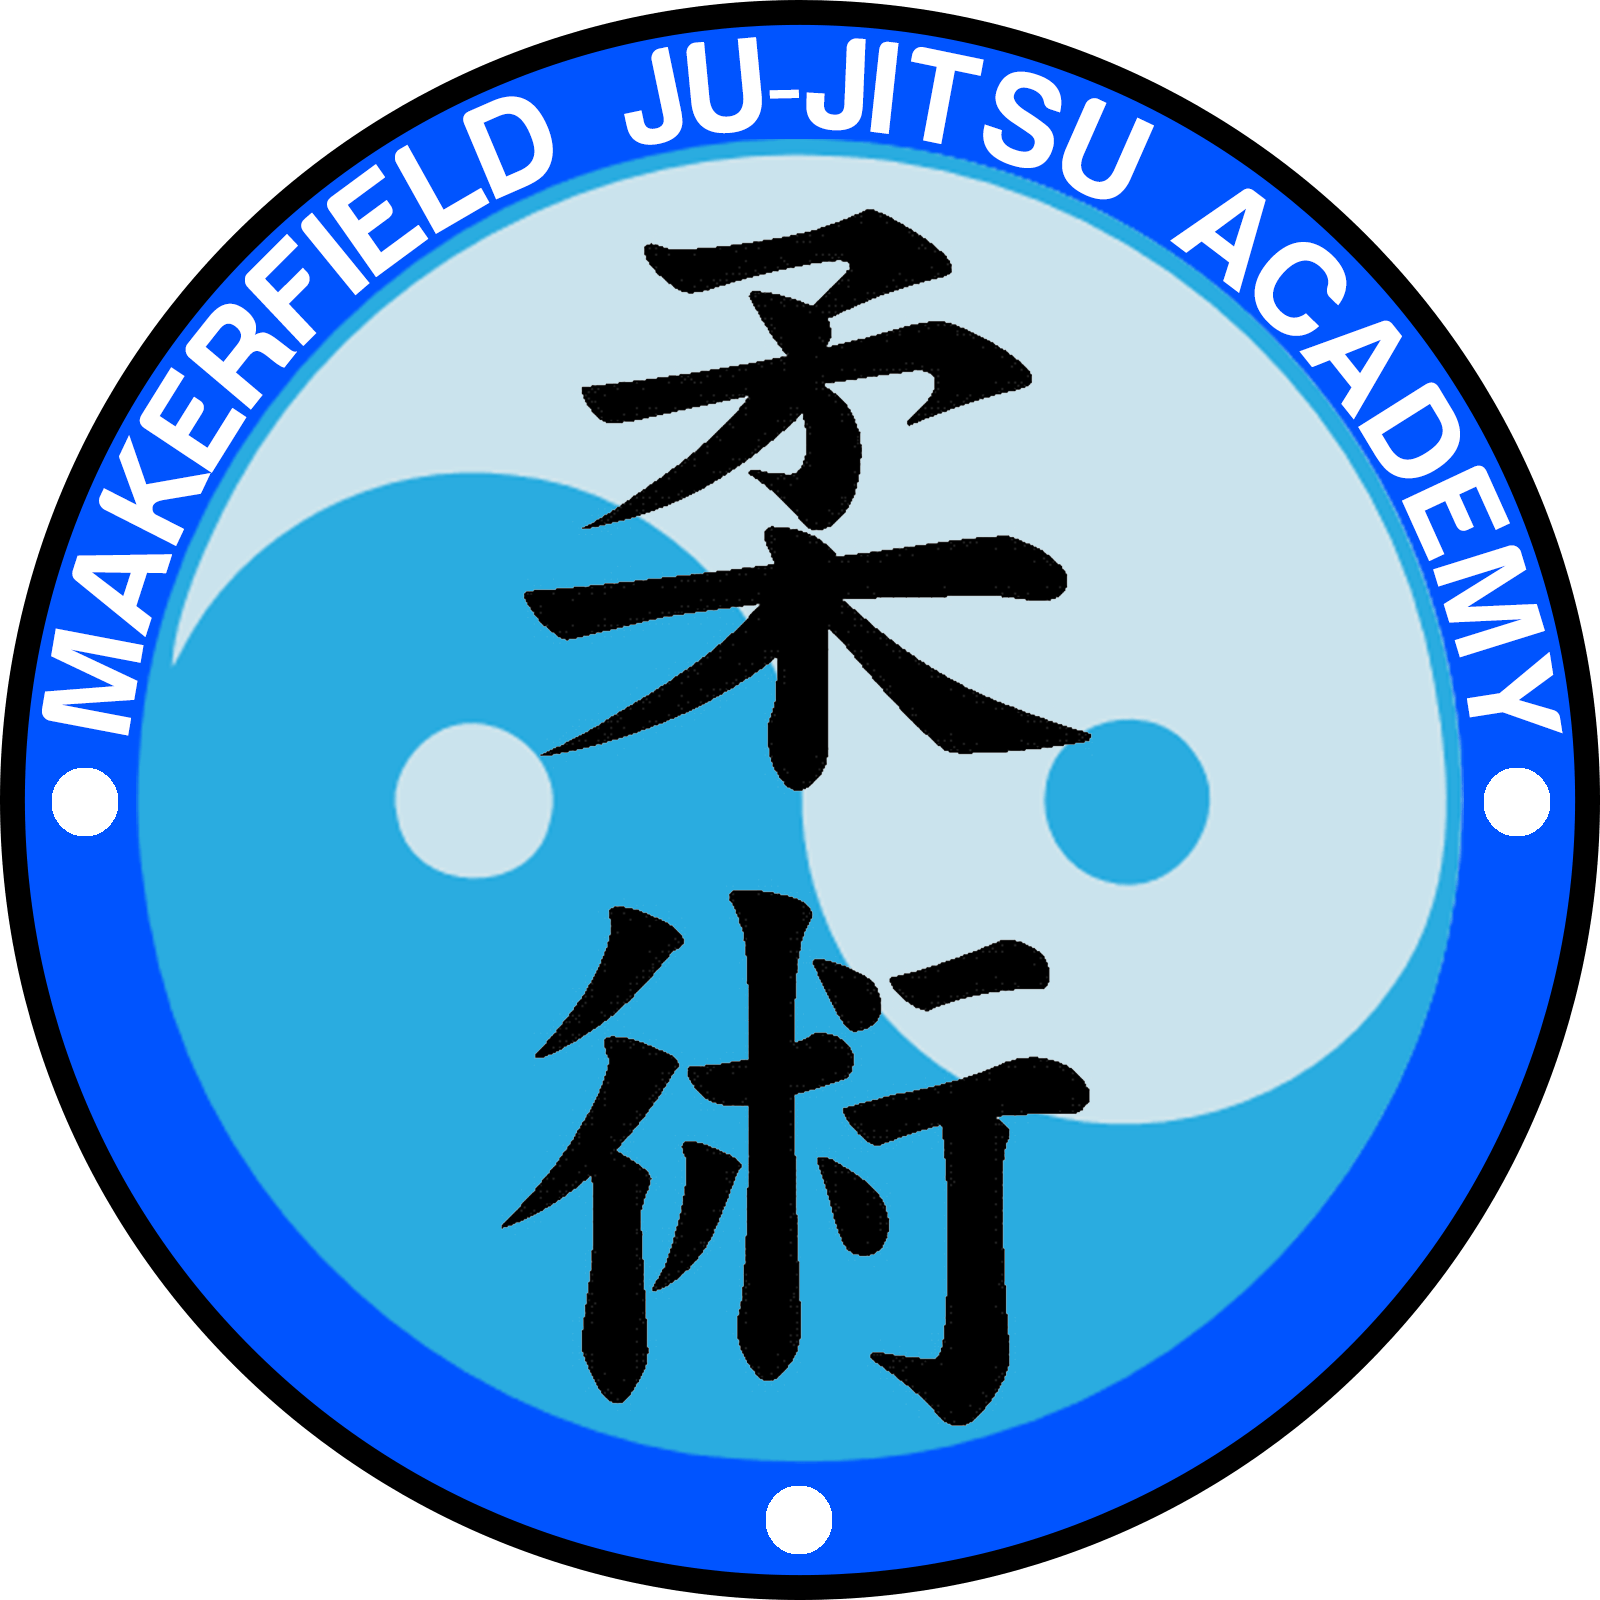 Makerfield Ju-Jitsu Club Logo